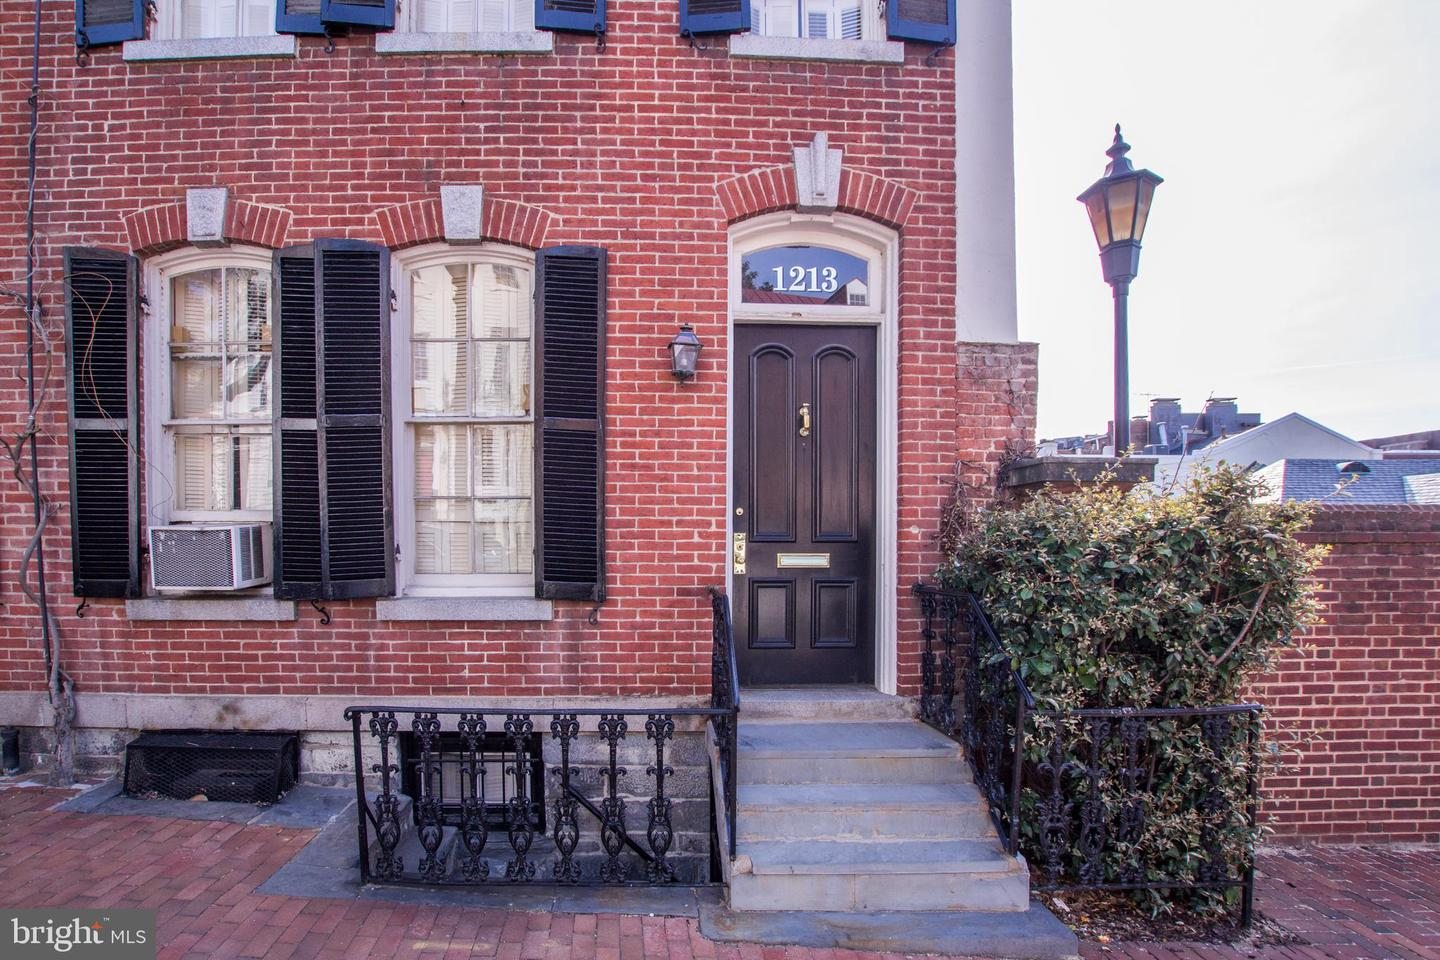 1213 30th St Nw Washington District Of Columbia 20007